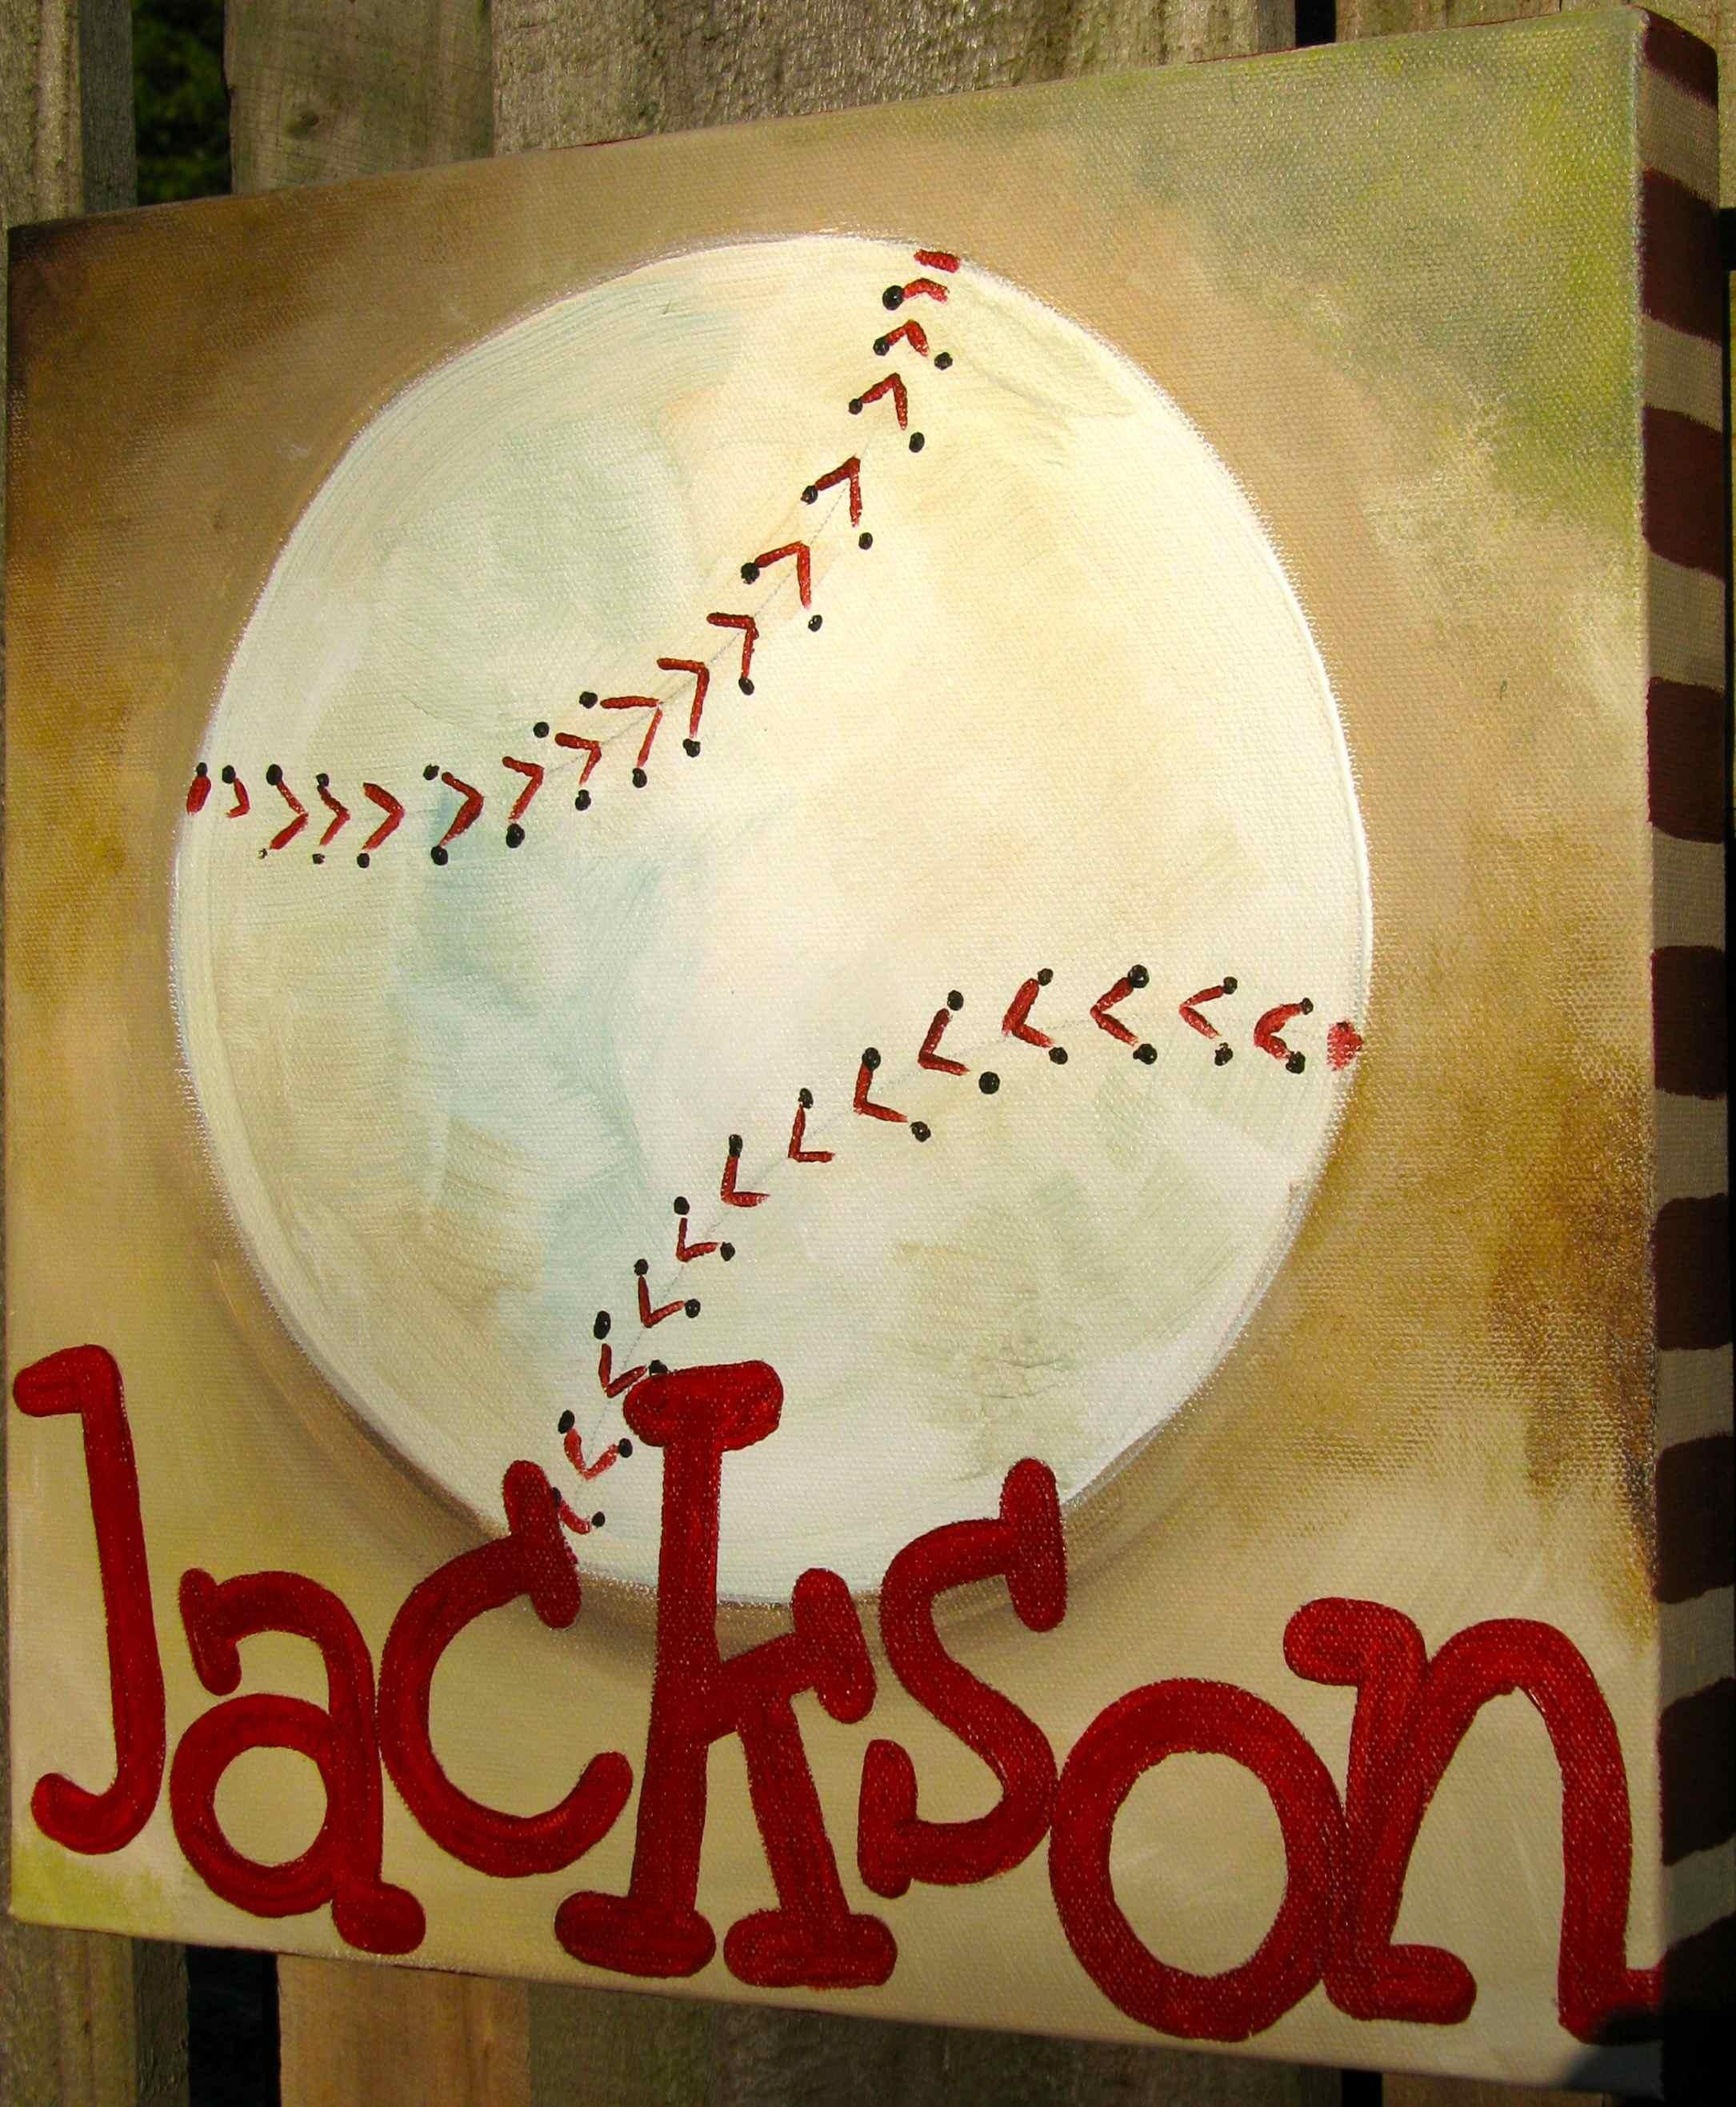 20 Best Collection Of Vintage Baseball Wall Art